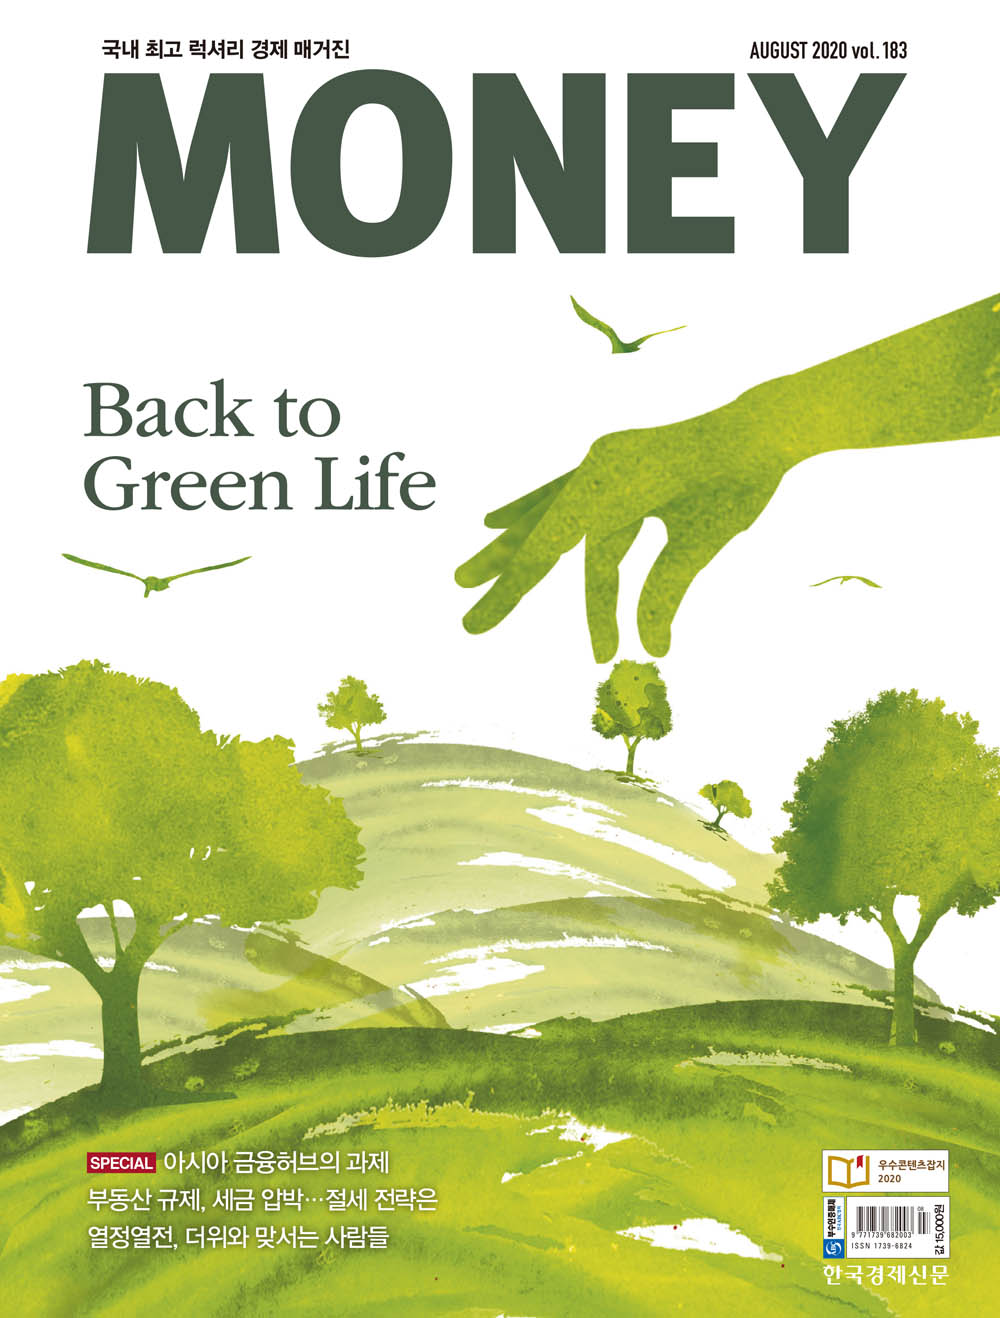 BACK TO GREEN LIFE